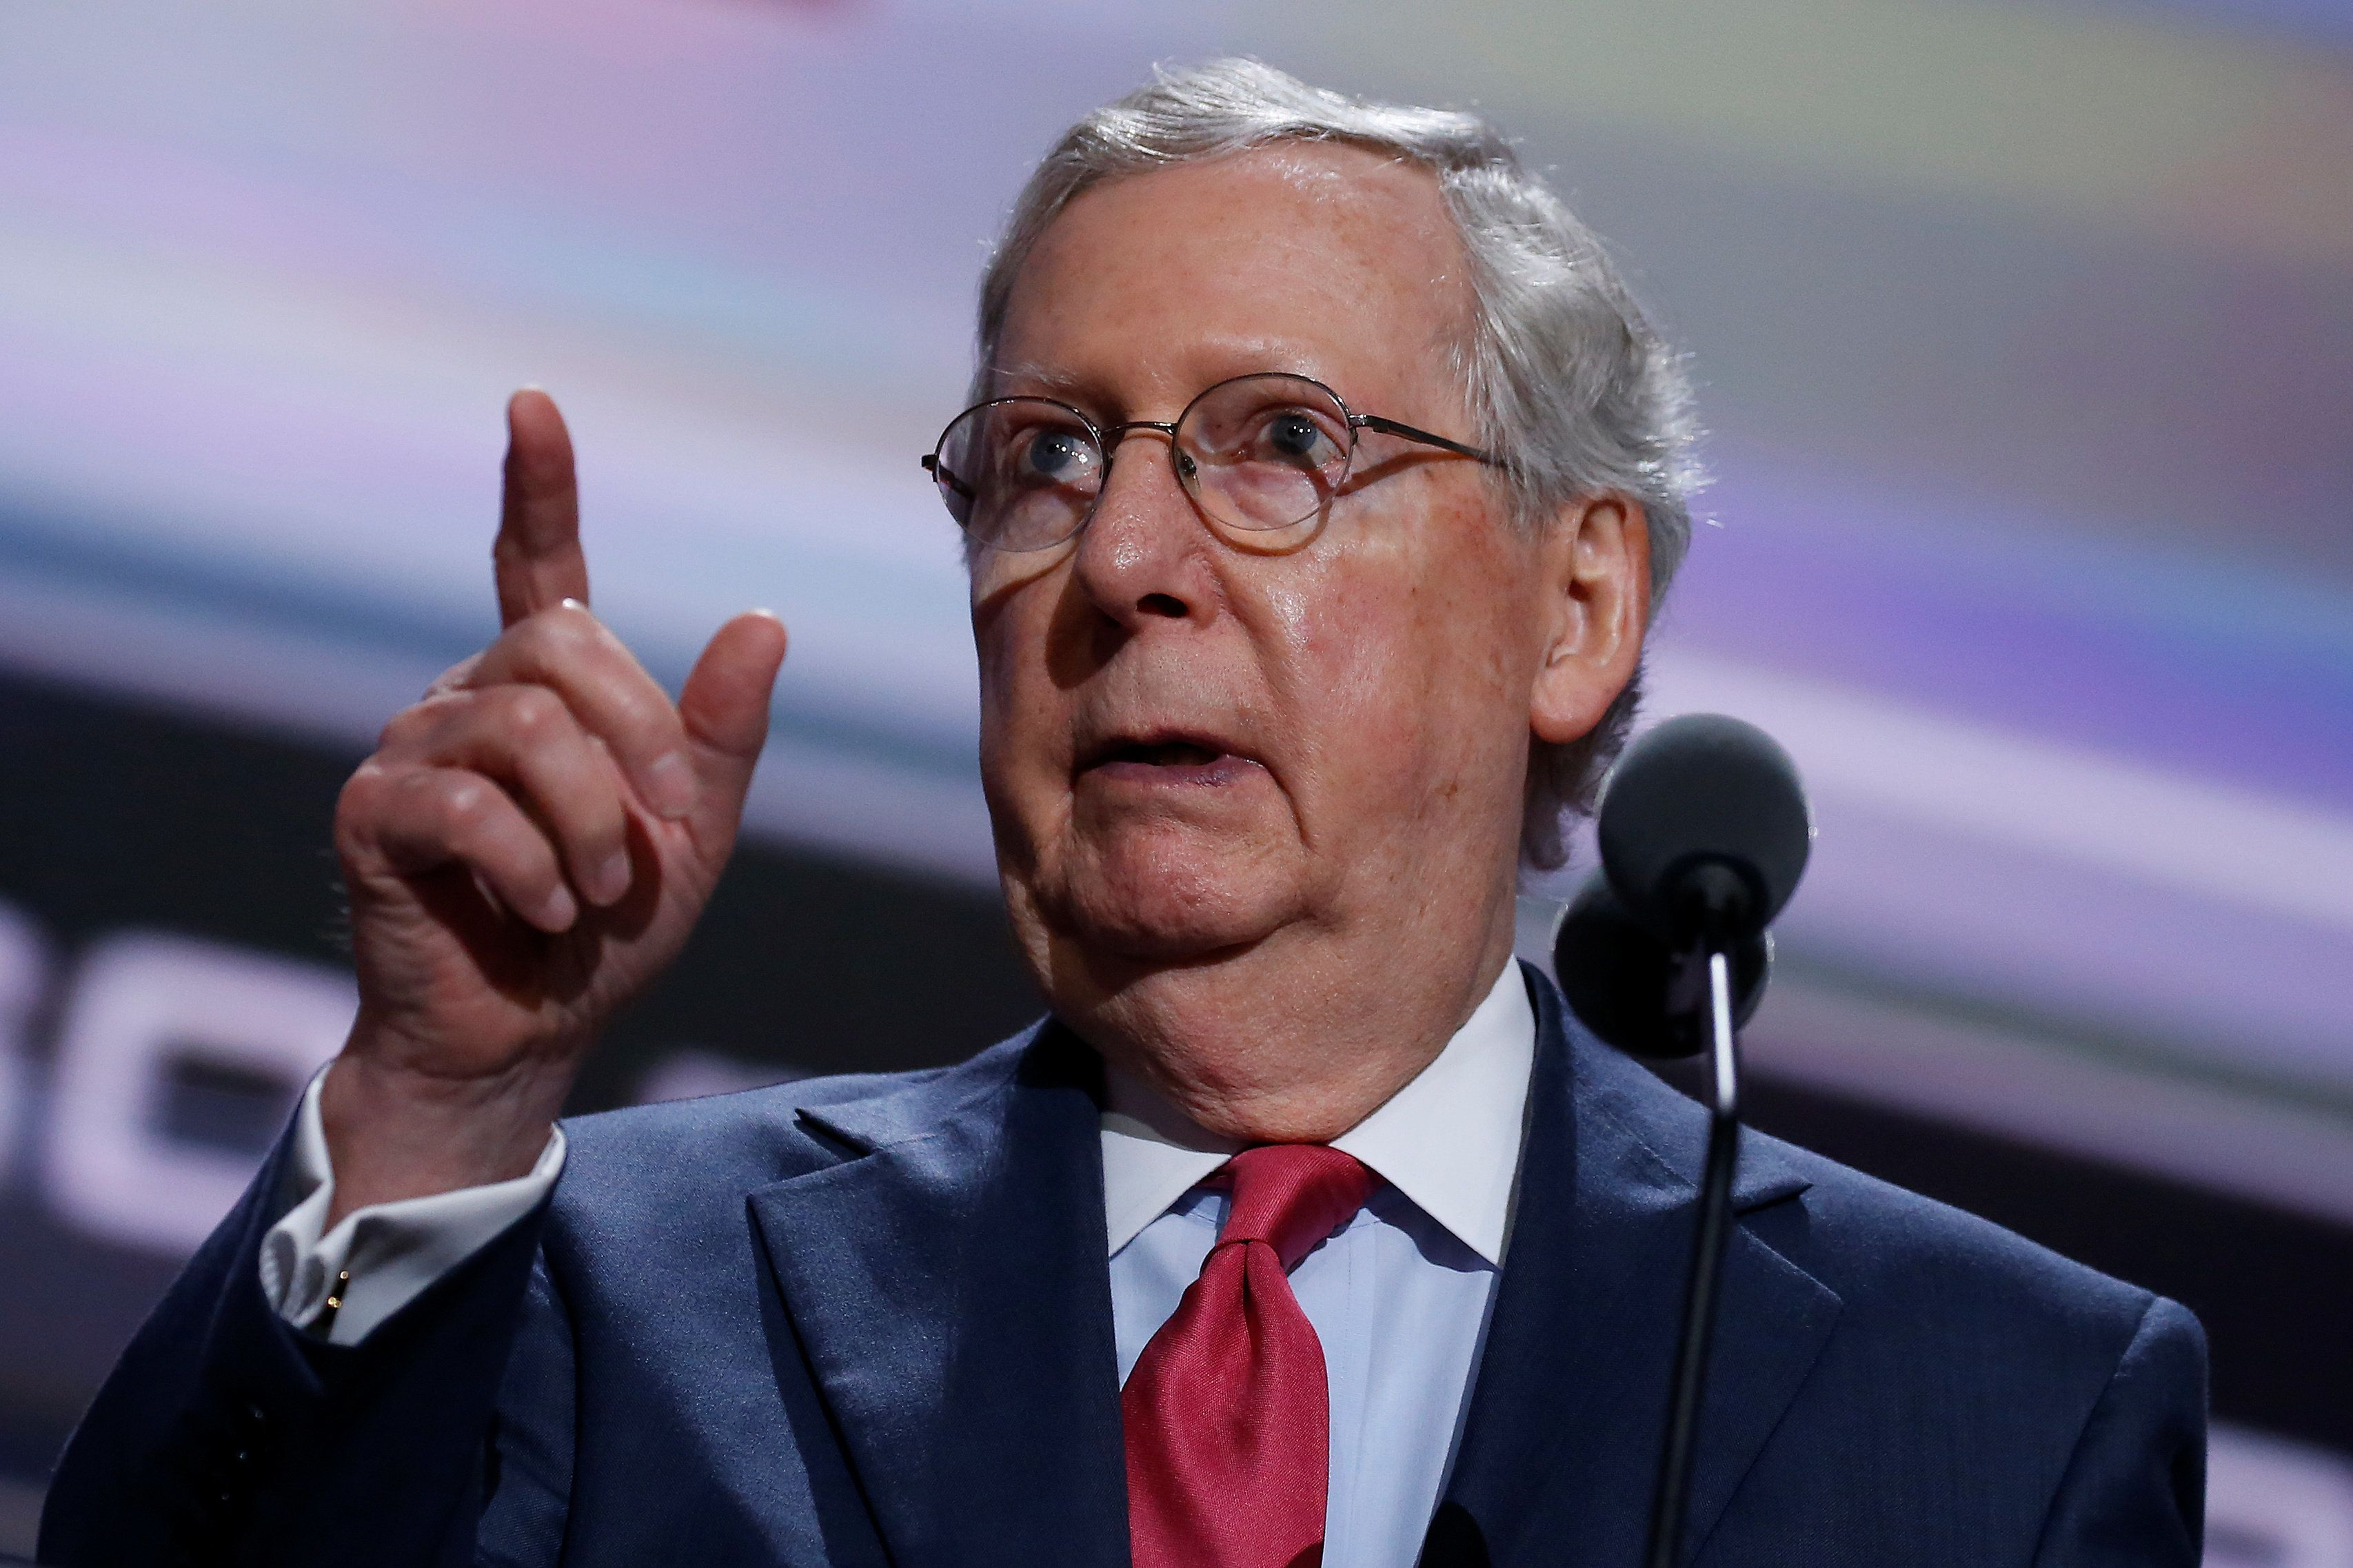 Senate Majority Leader Mitch McConnell (R-Ky.) blames the Democrats, while the Democrats blame the Republicans. And either wa